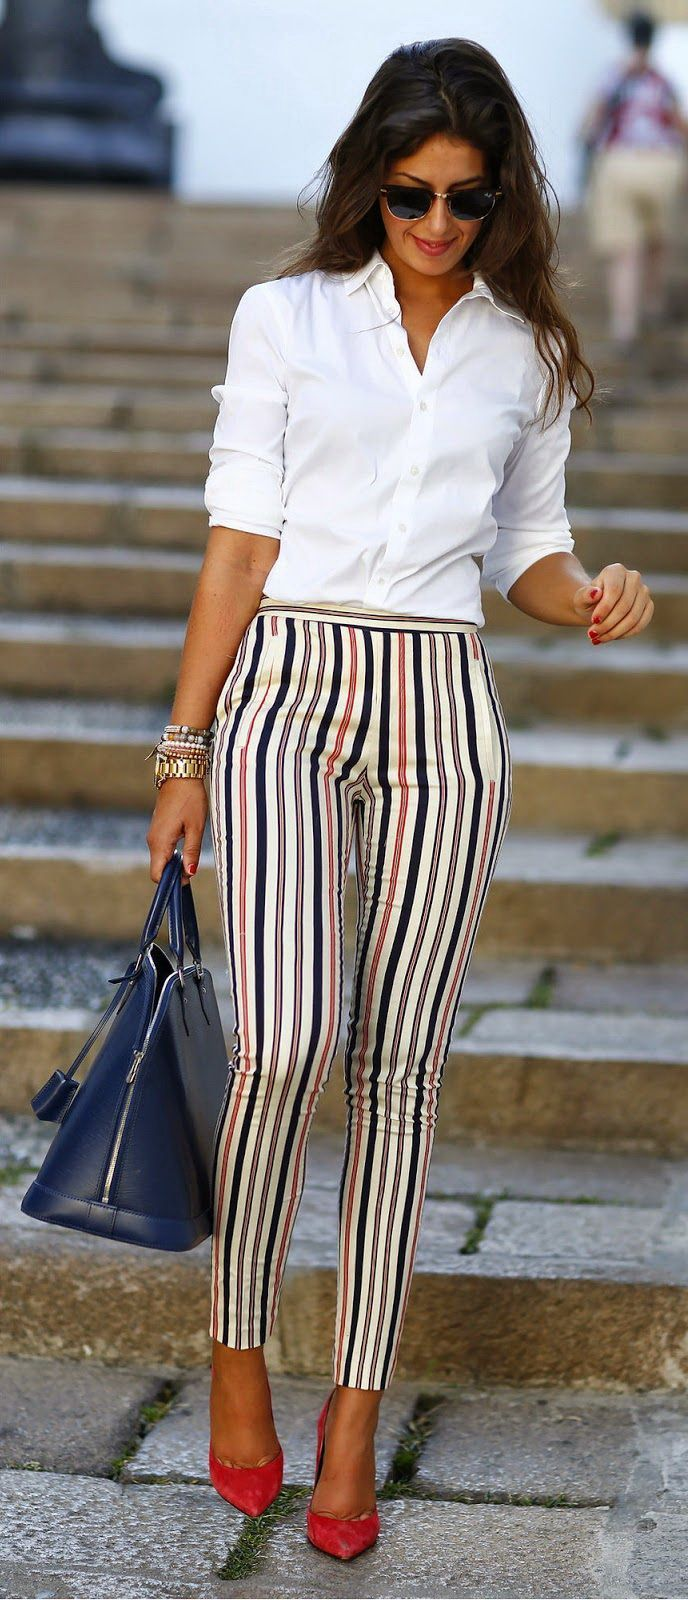 98c420ada6a4 30 stylish summer outfit combinations to wear at work | What 2 wear ...